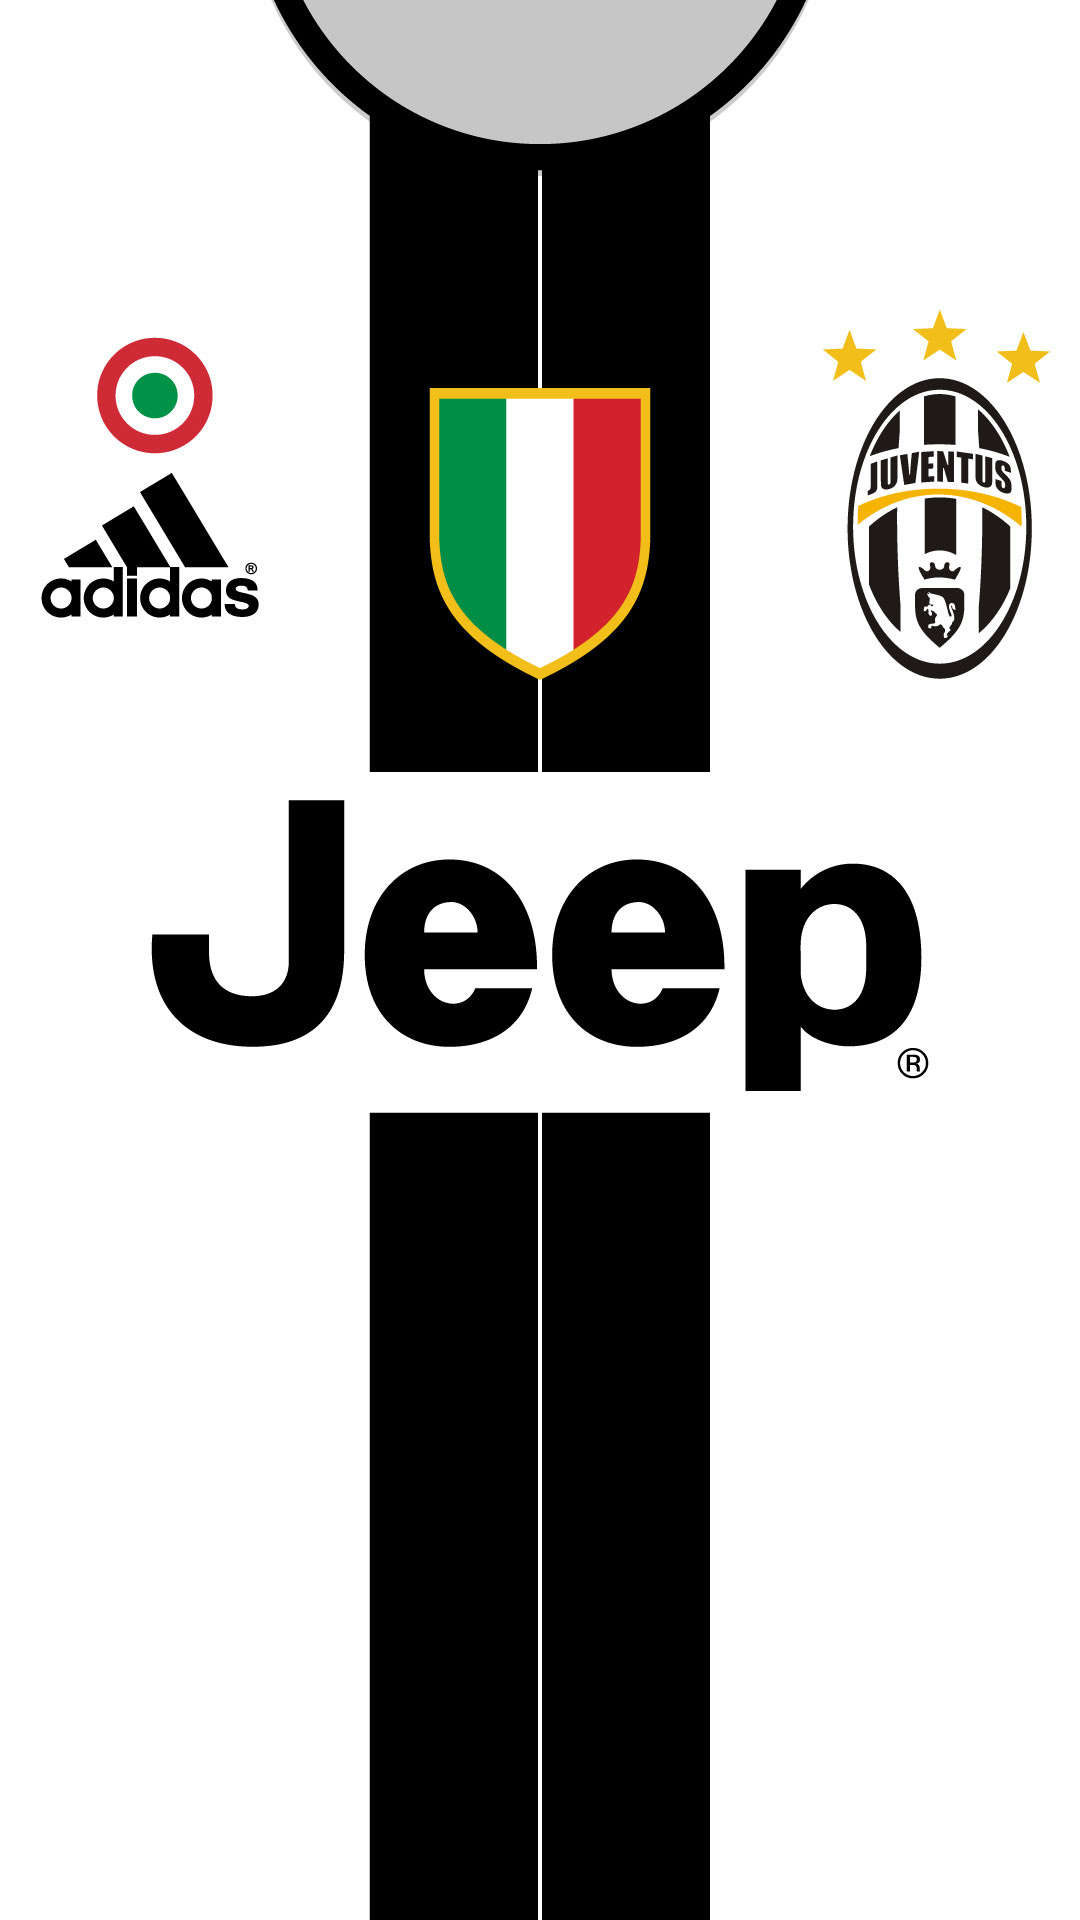 download wallpapers juventus 4k new logo serie a fc juventus italy stone texture new 16 phone wallpaper download wallpapers juventus 4k new